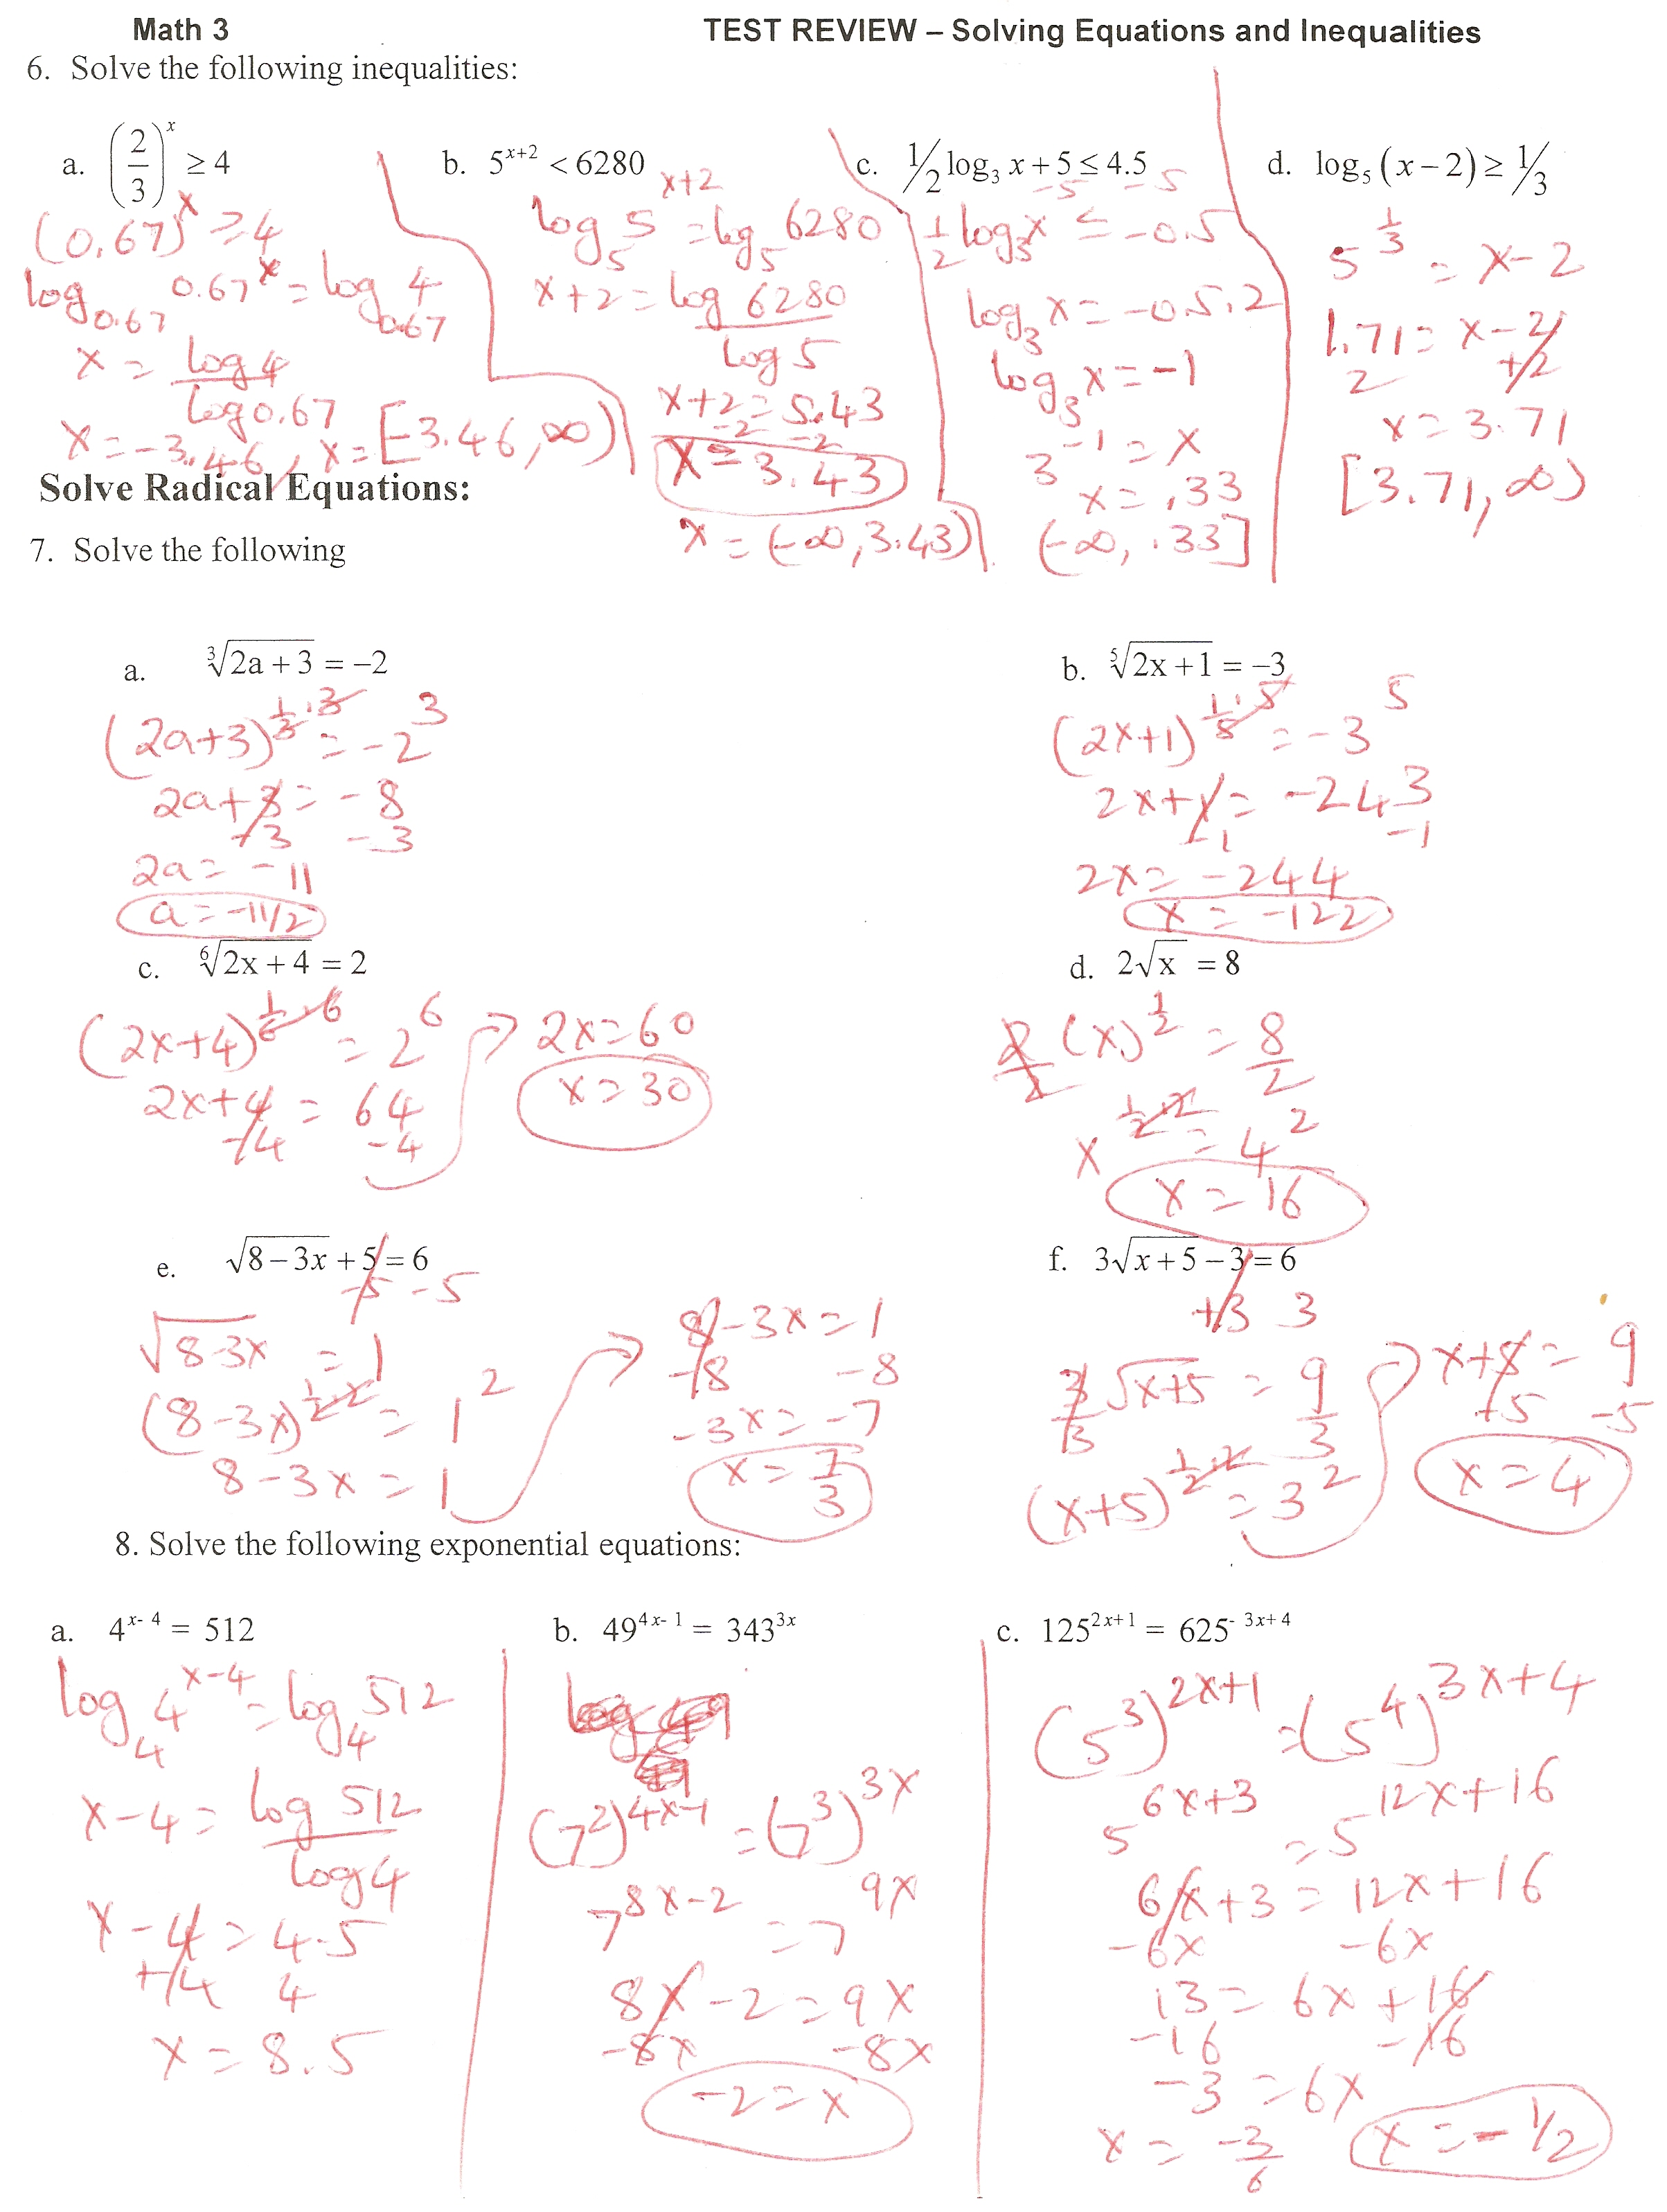 Solving Exponential and Log equations Test Review Ms Osawaru – Solving Radical Equations Worksheet with Answers